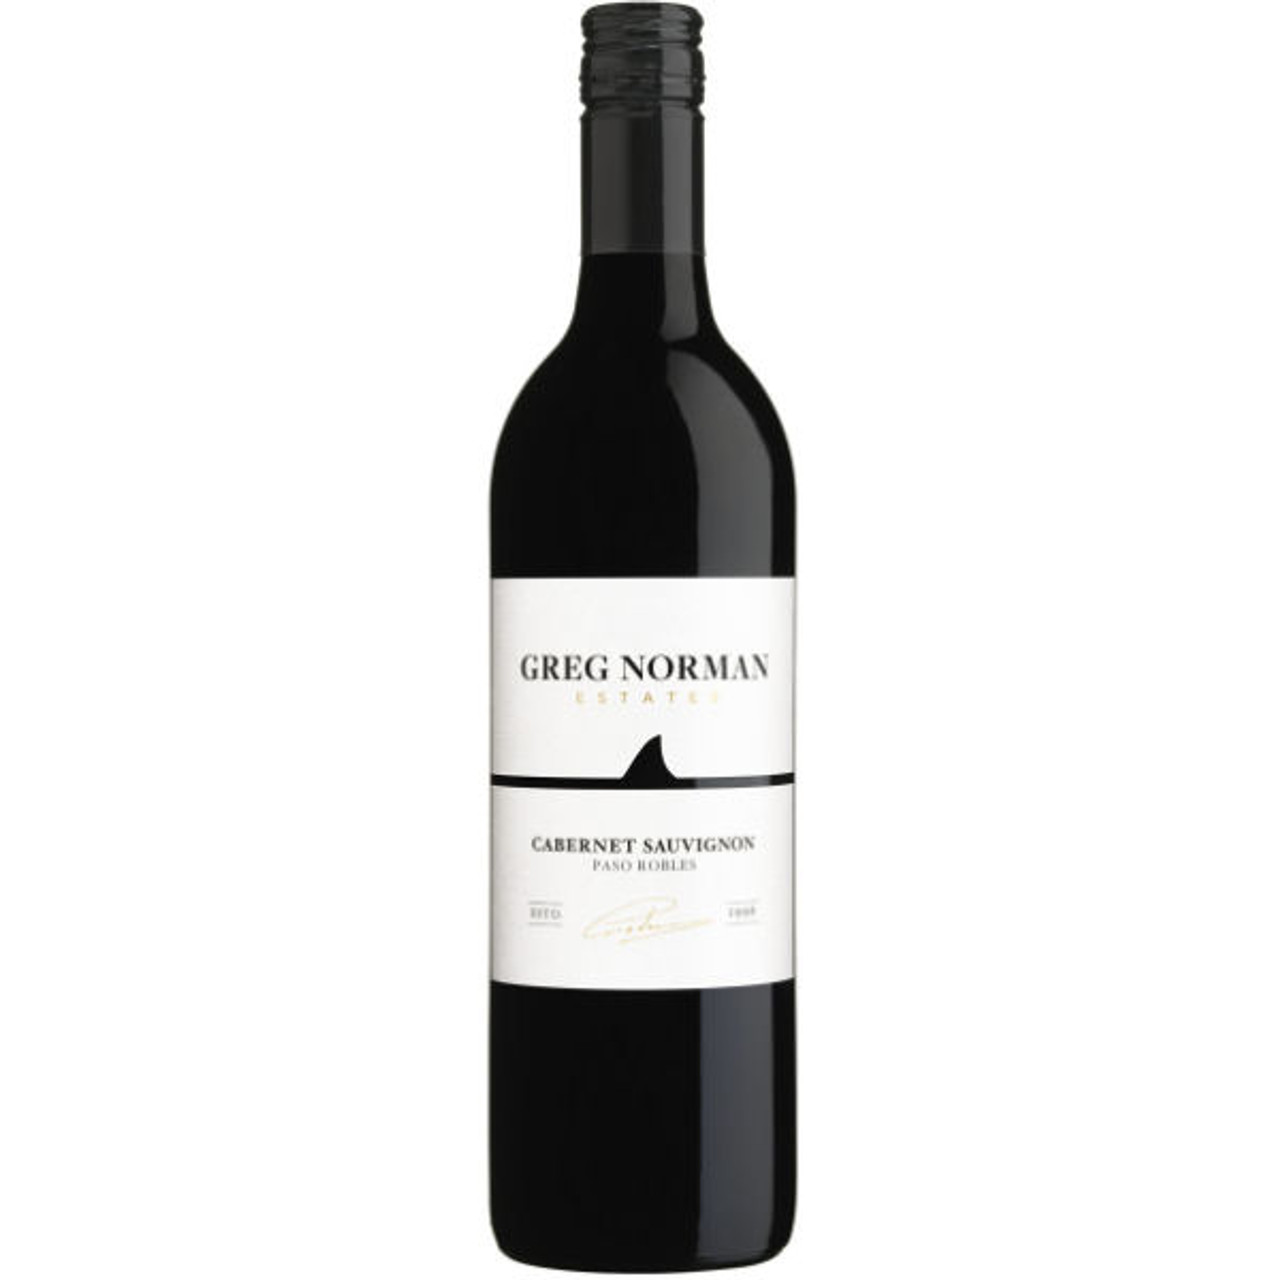 Greg Norman Estates Paso Robles Cabernet